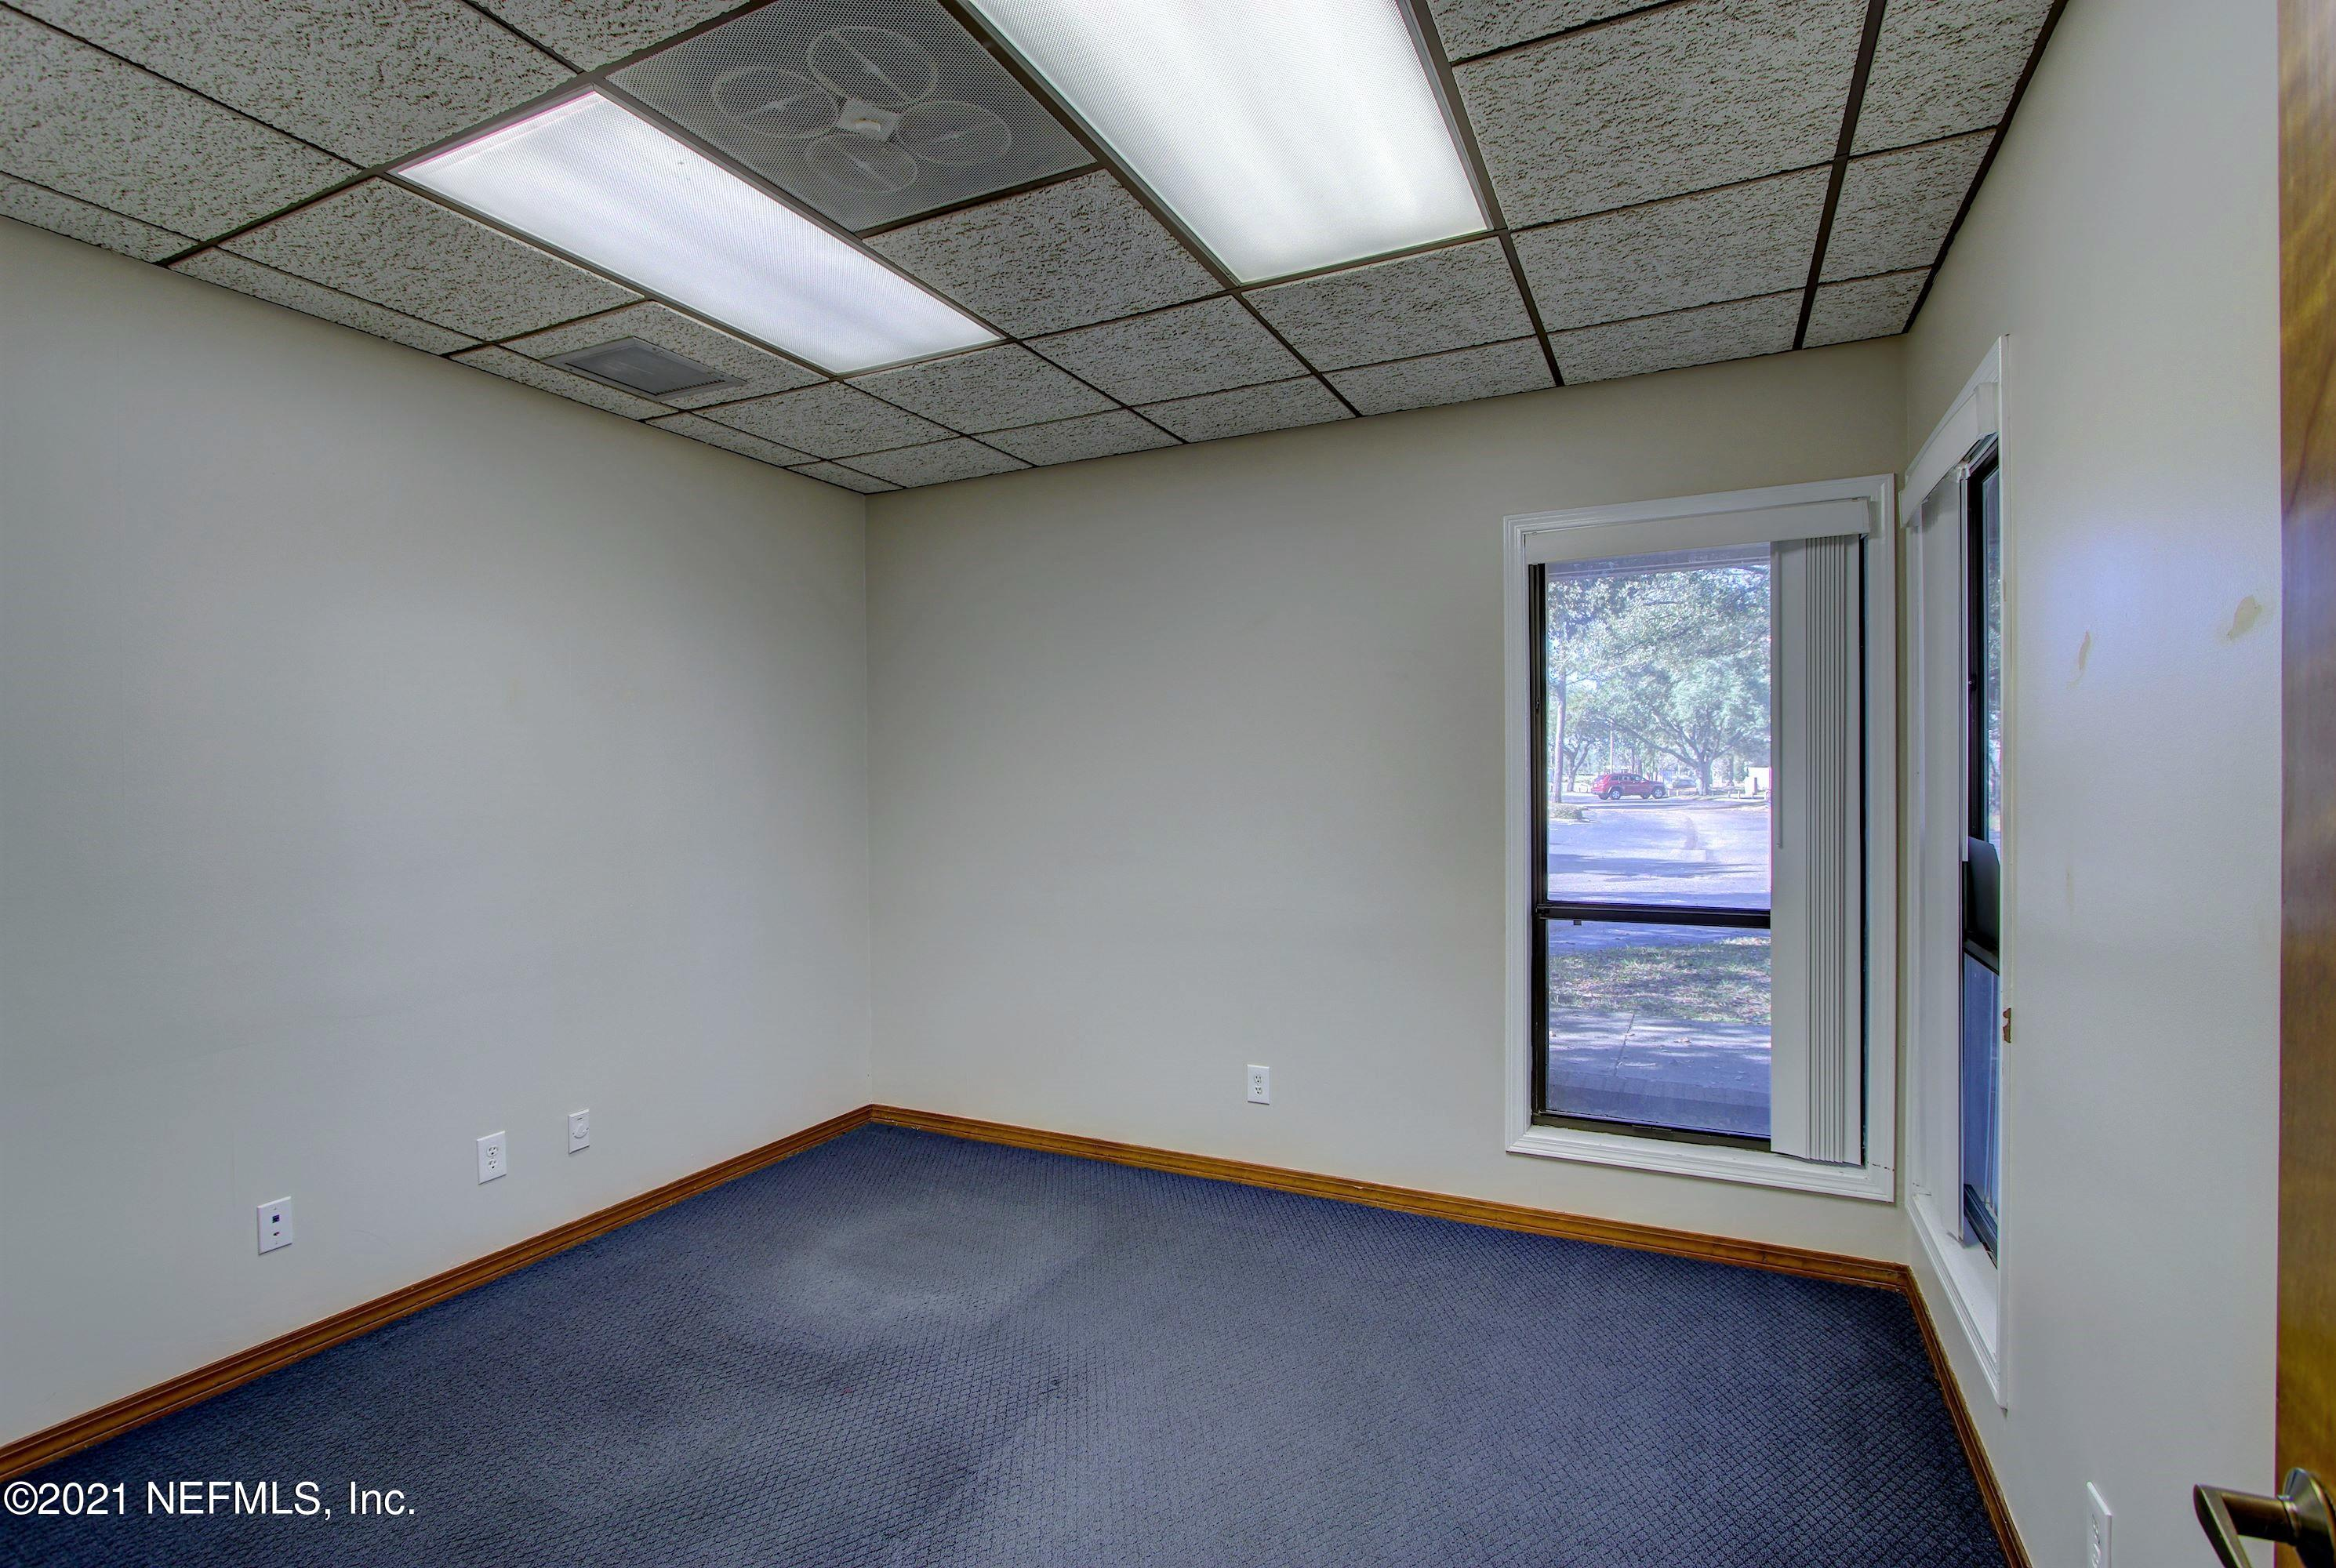 9471 BAYMEADOWS, JACKSONVILLE, FLORIDA 32256, ,Commercial,For sale,BAYMEADOWS,1089005